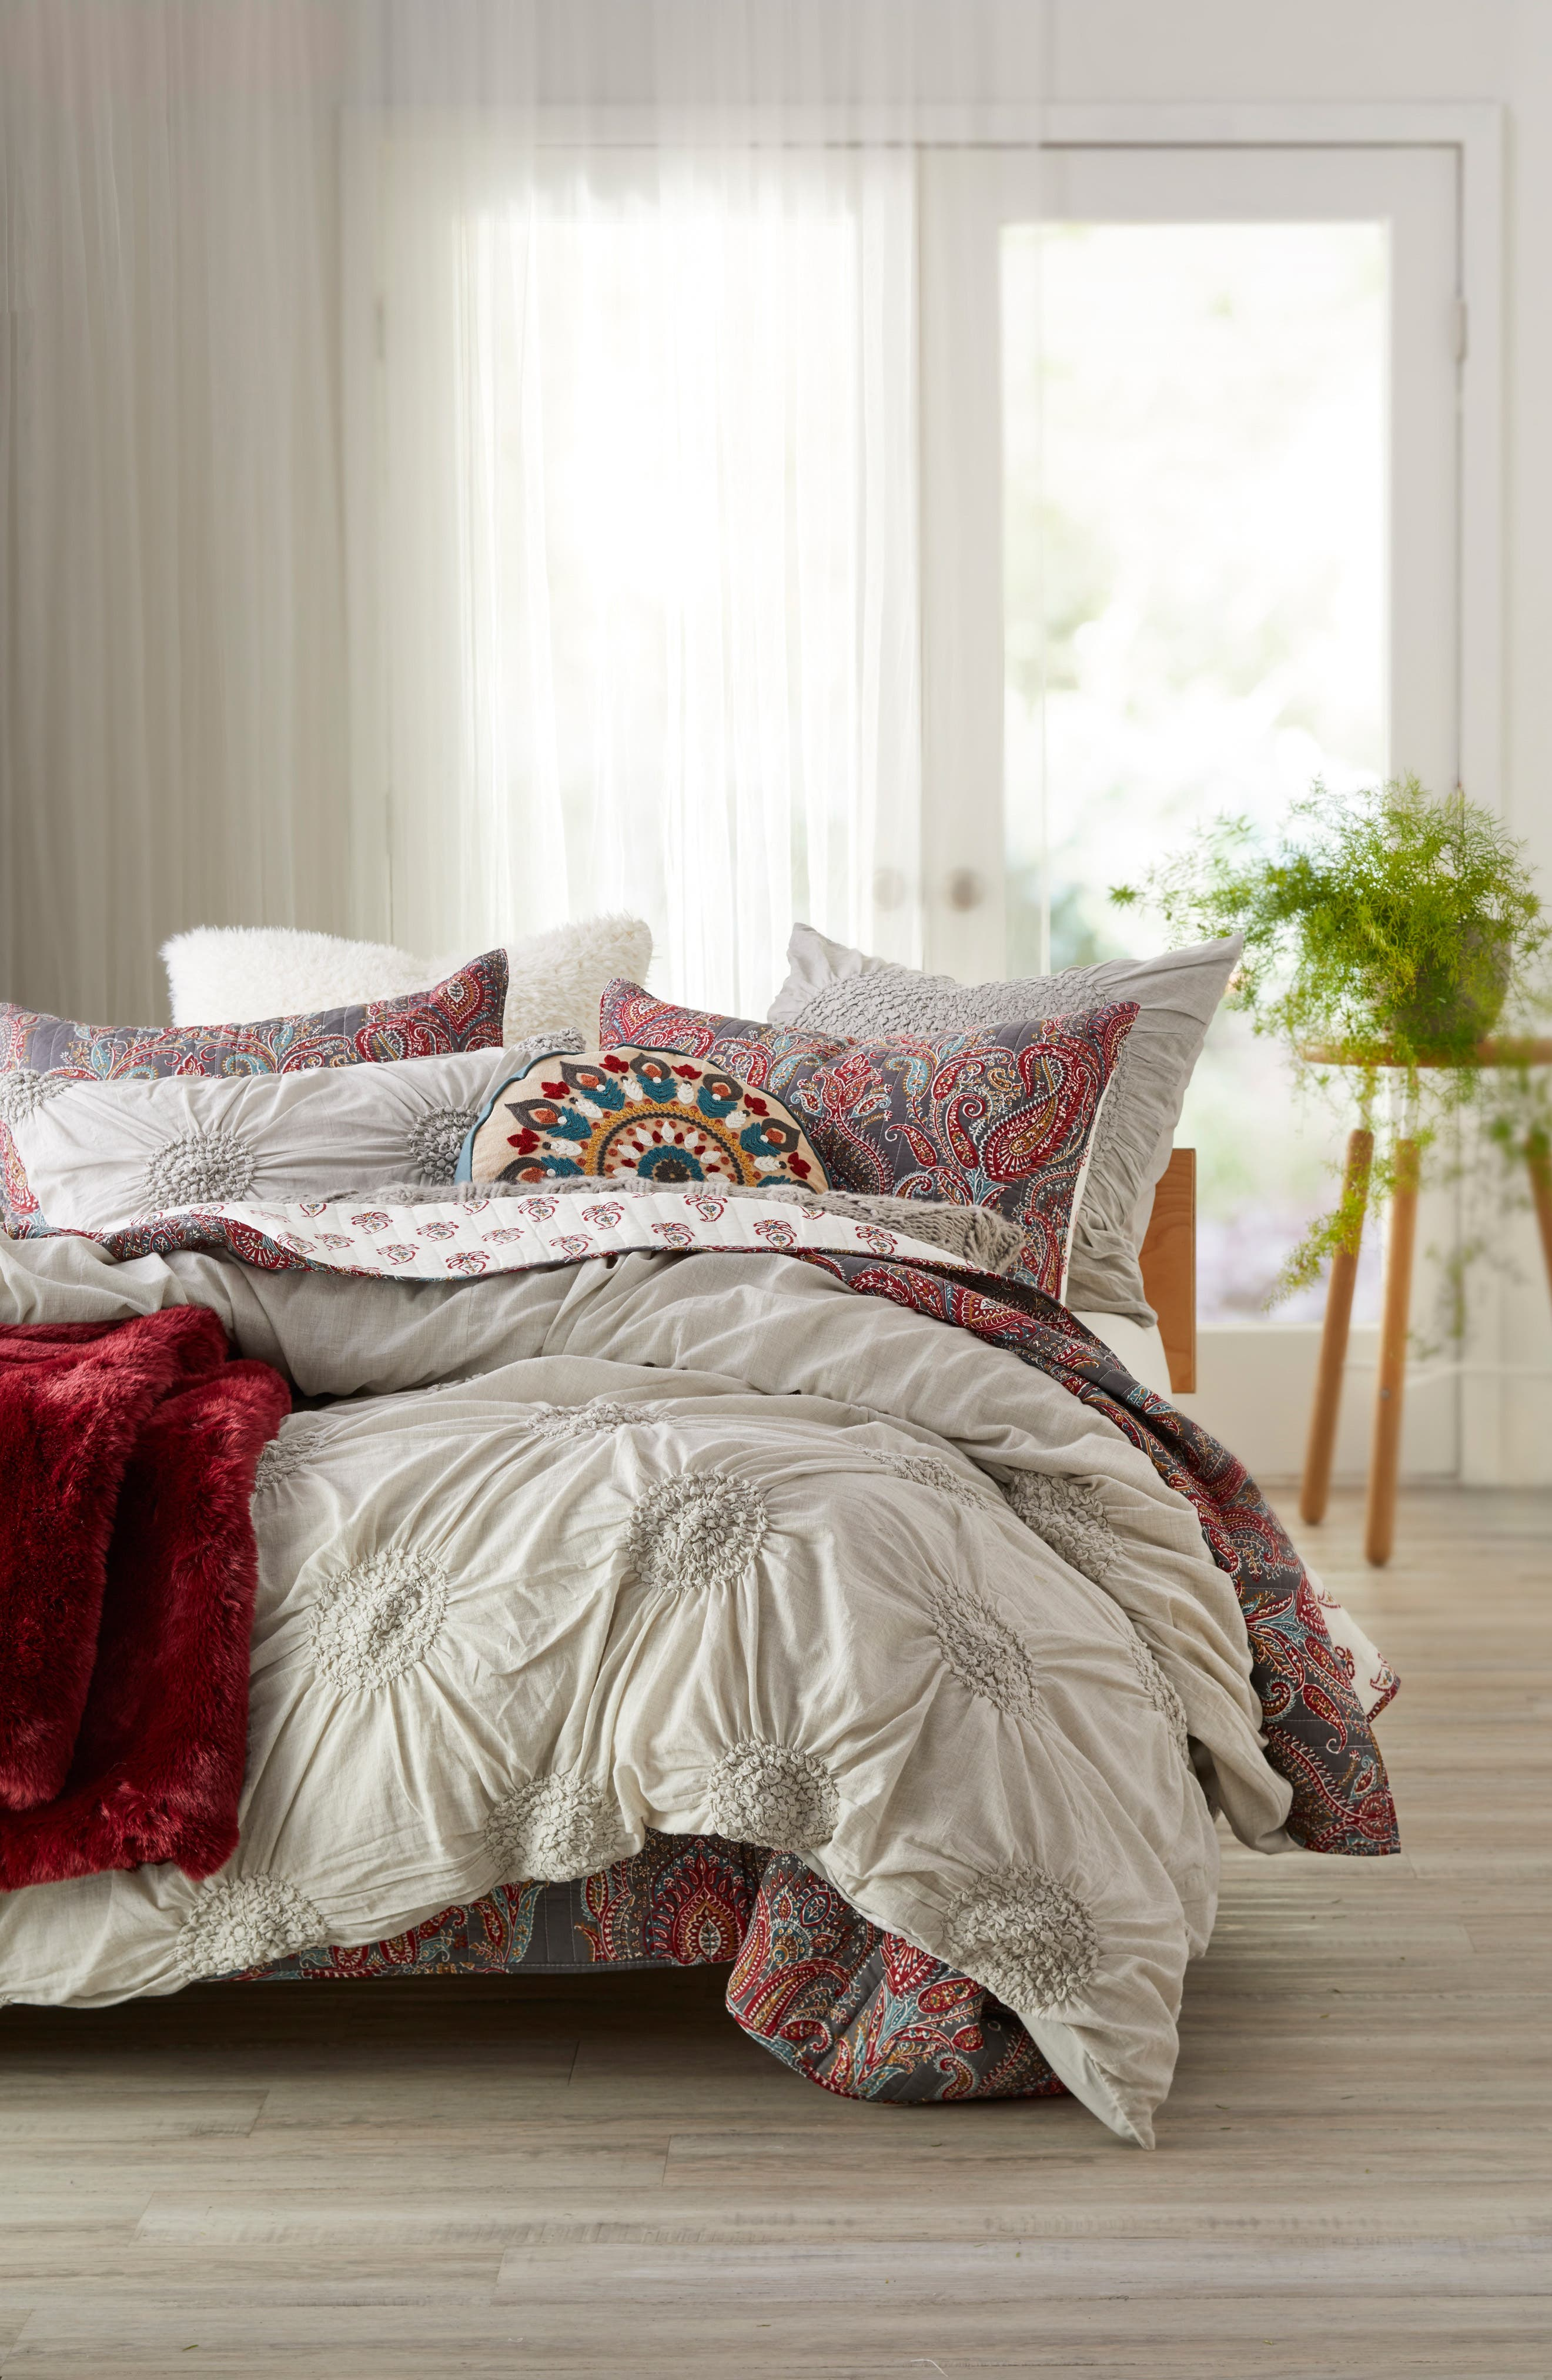 Nordstrom at Home Chloe Duvet & Levtex Presidio Quilt Bedding Collection